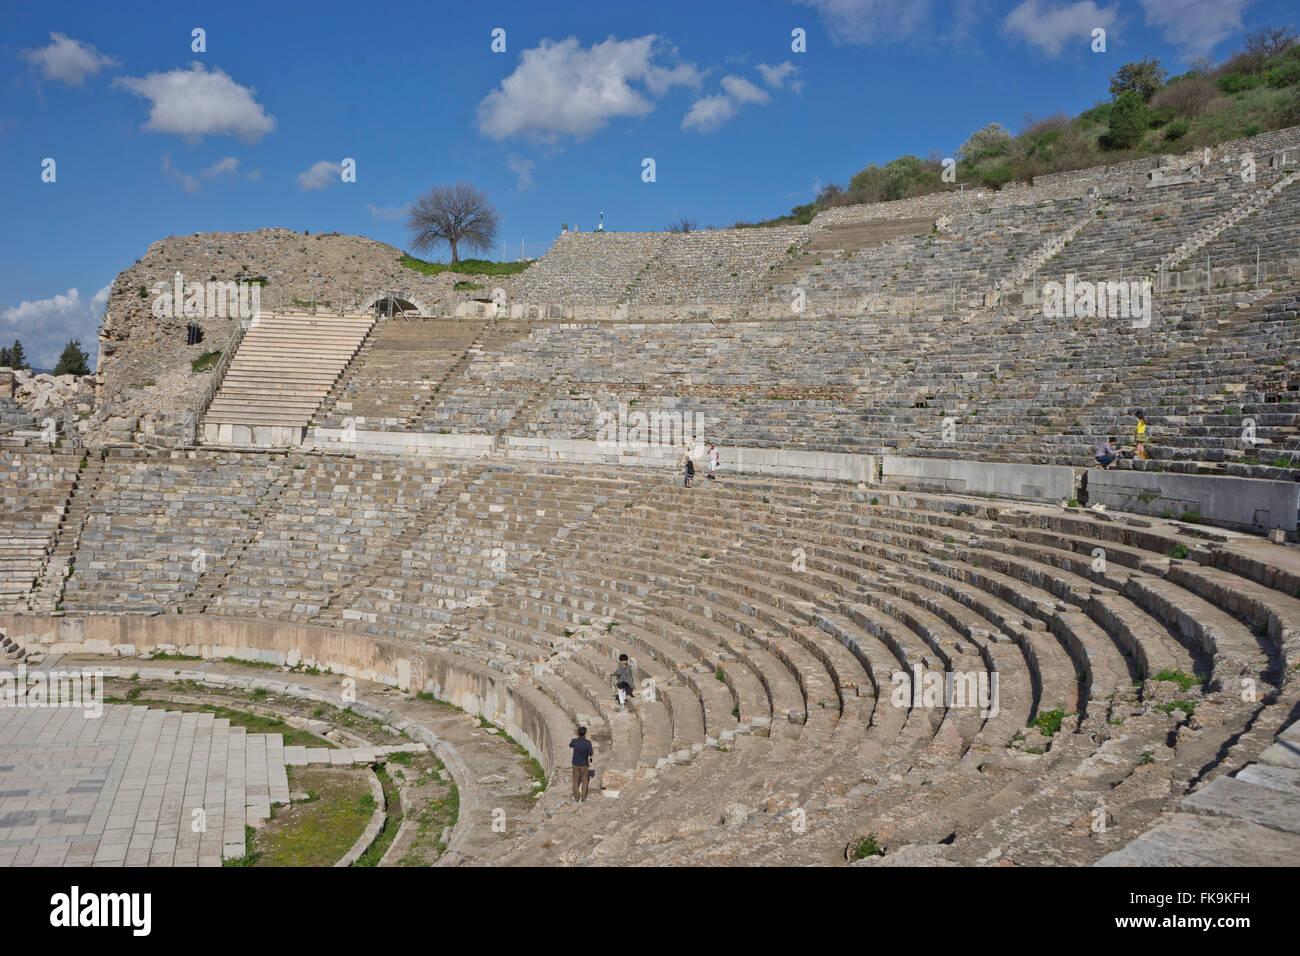 Amphitheatre at the ancient Greek and Roman periods city of Ephesus in Turkey - Stock Image